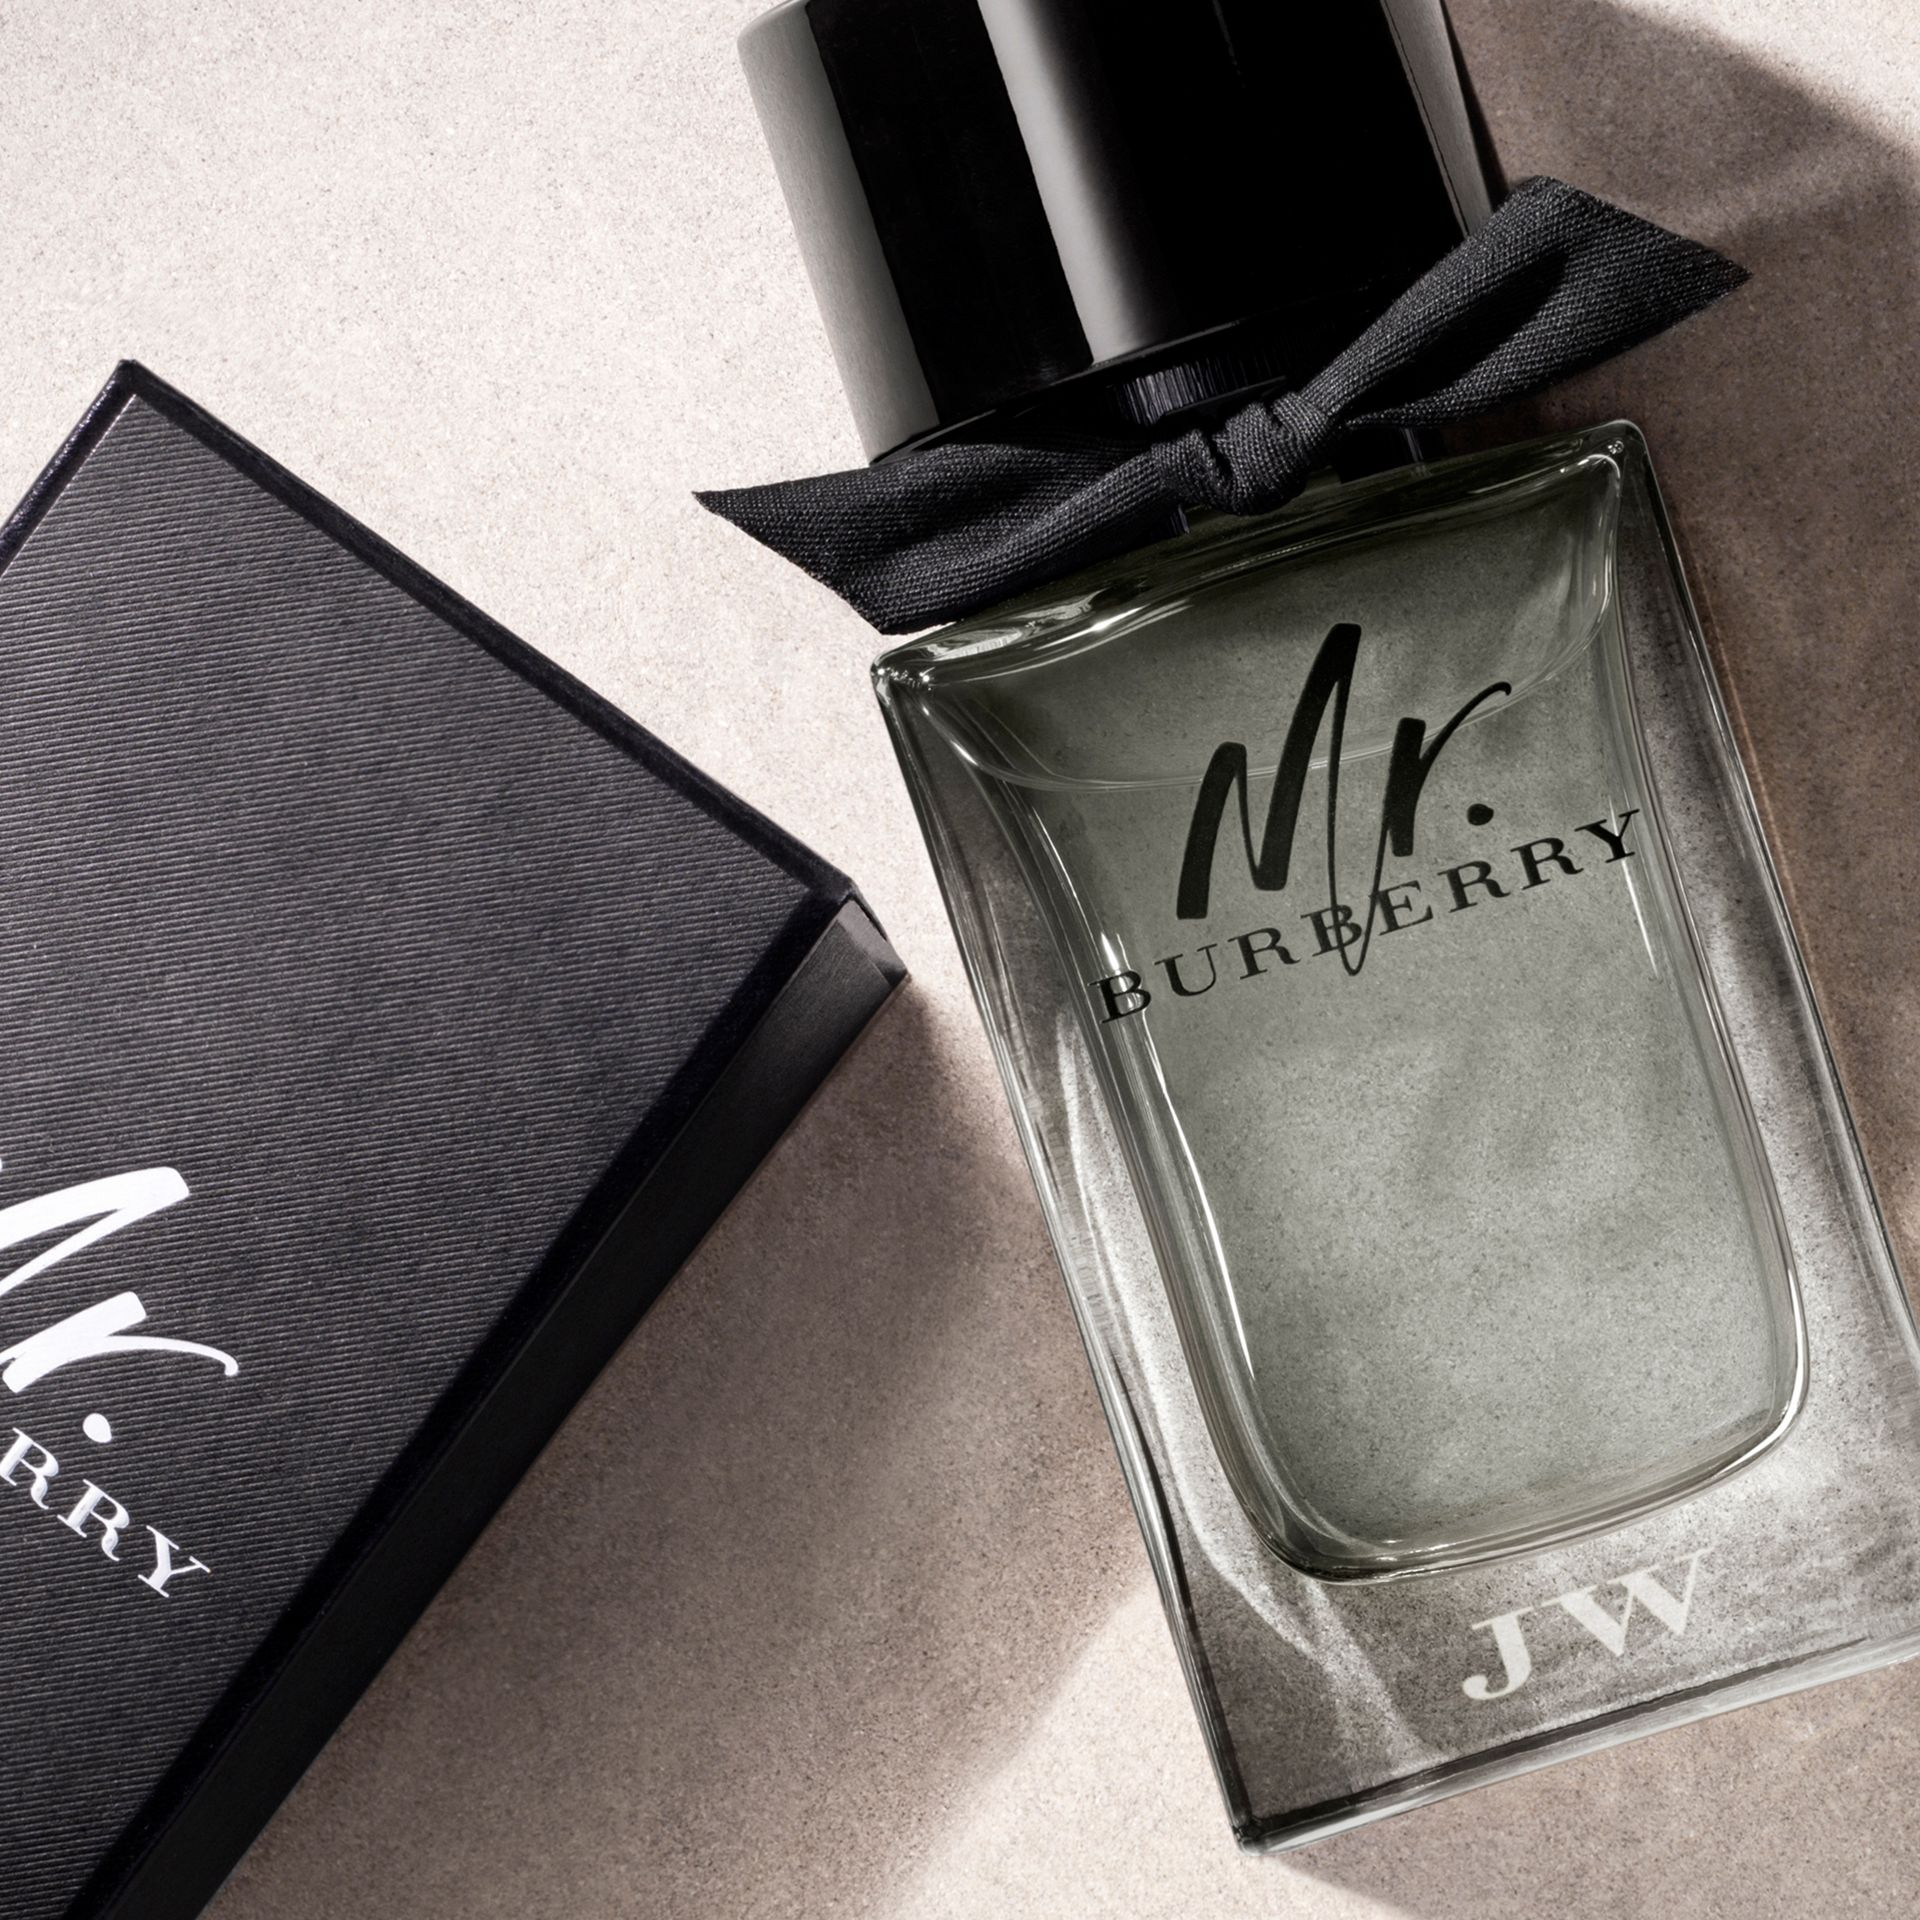 Mr. Burberry Eau de Toilette 1000 ml - immagine della galleria 3